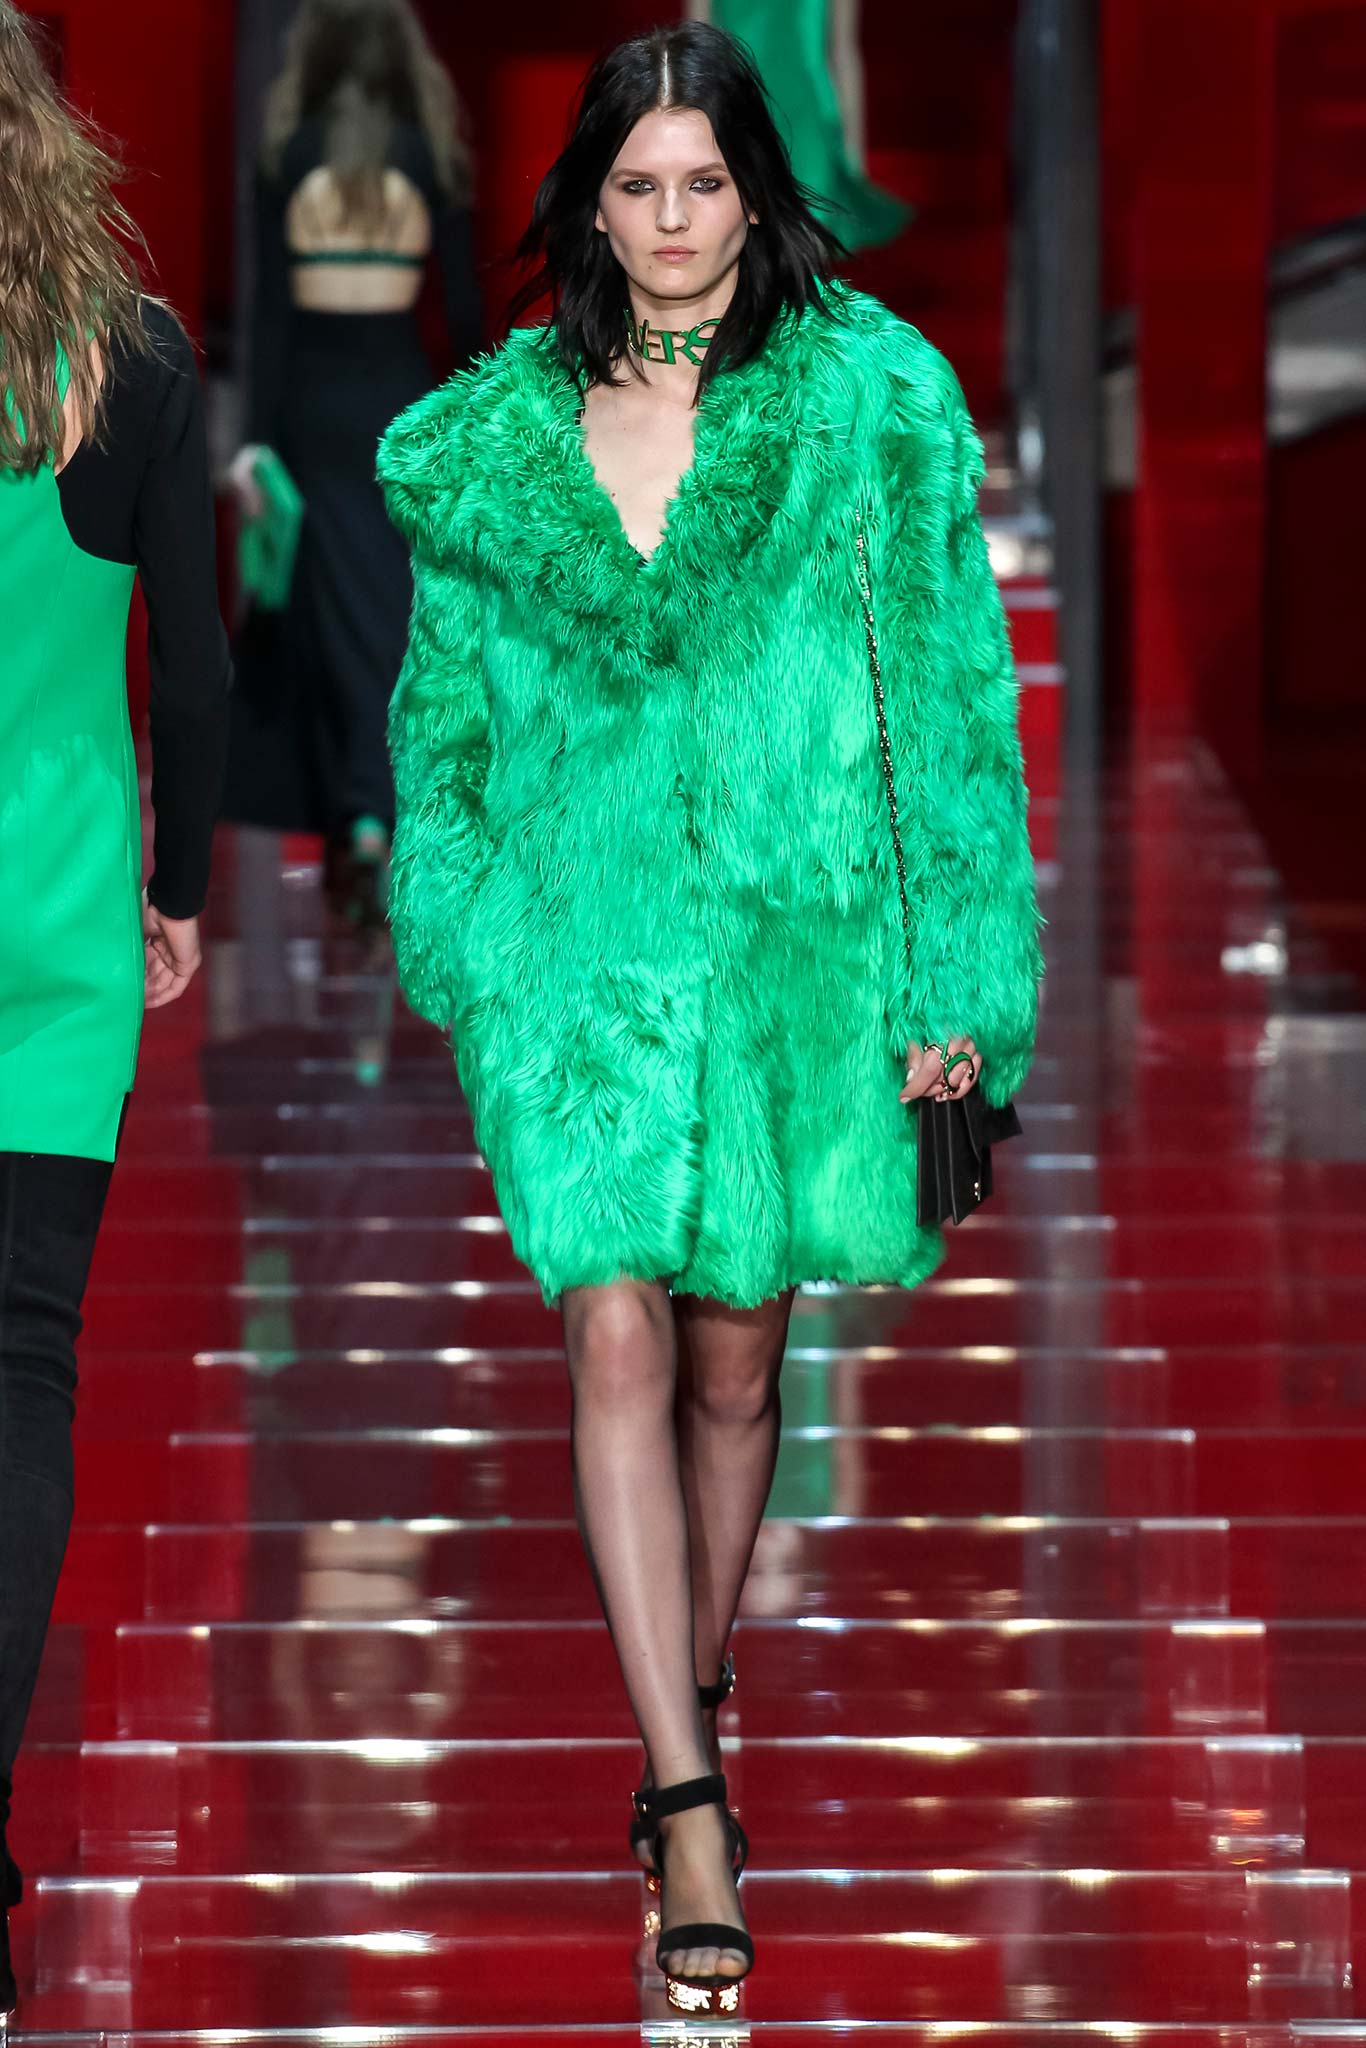 Green in fashion 2018 The ten color trends for Spring Summer 2018